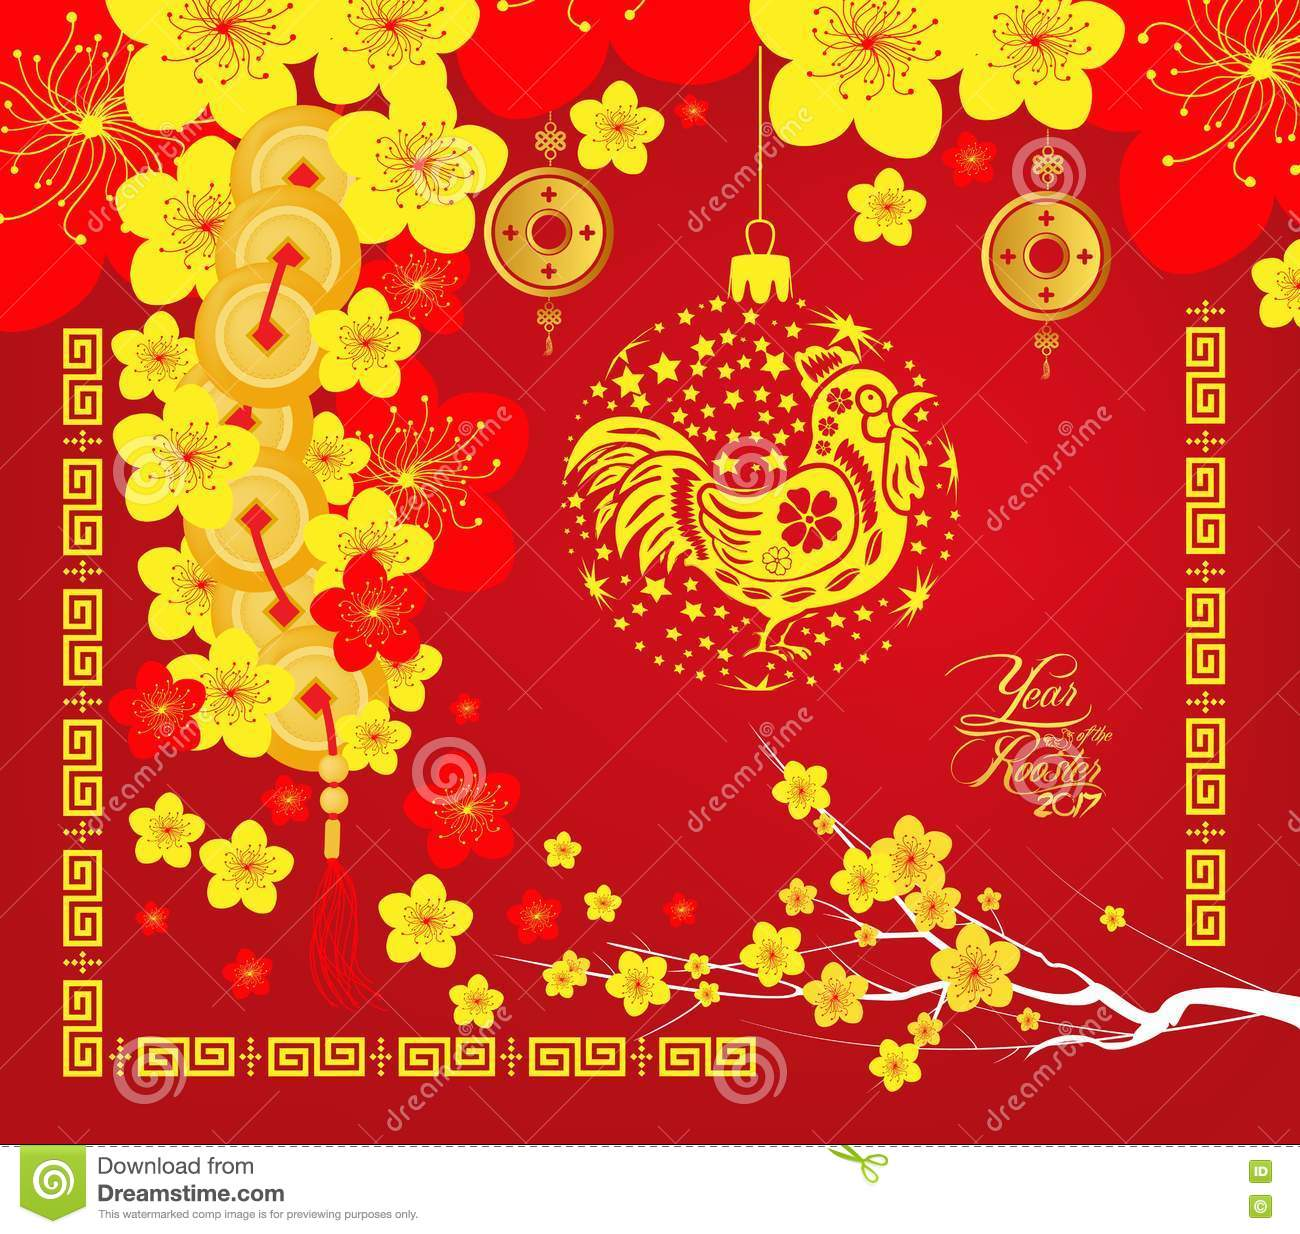 Chinese New Year 2017 Greeting Card Stock Photos, Images ...